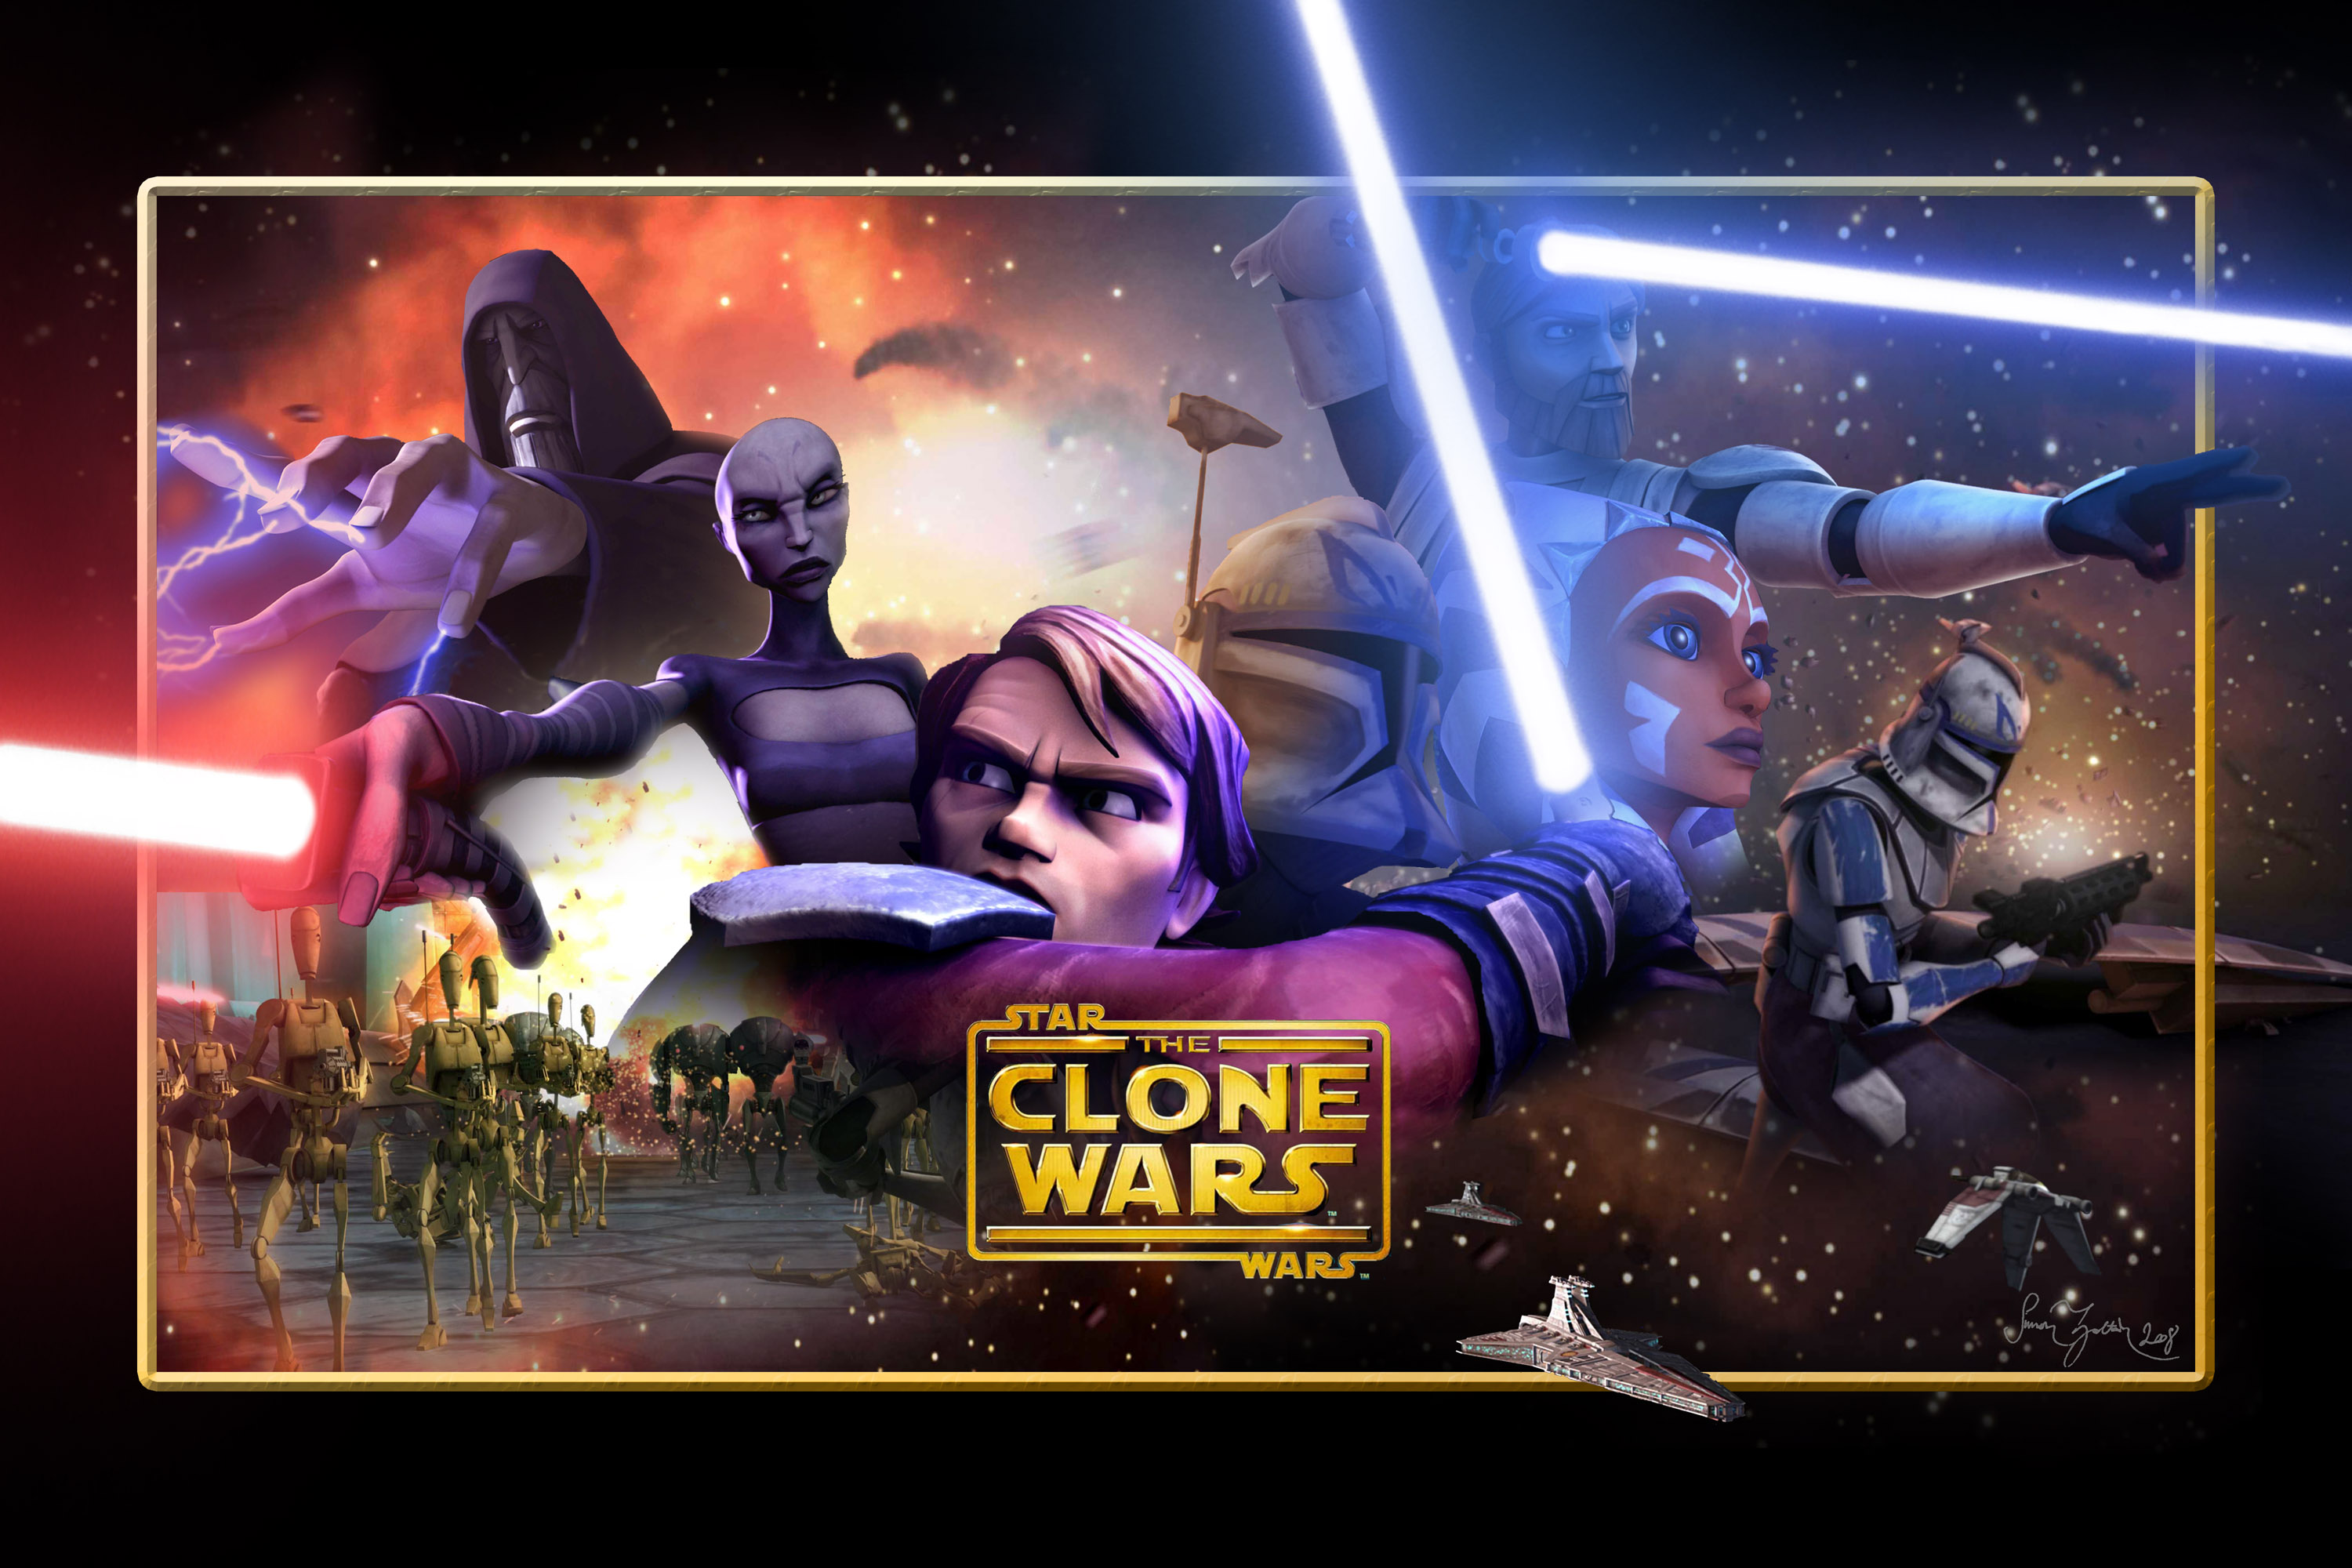 Star wars the clone wars 3d